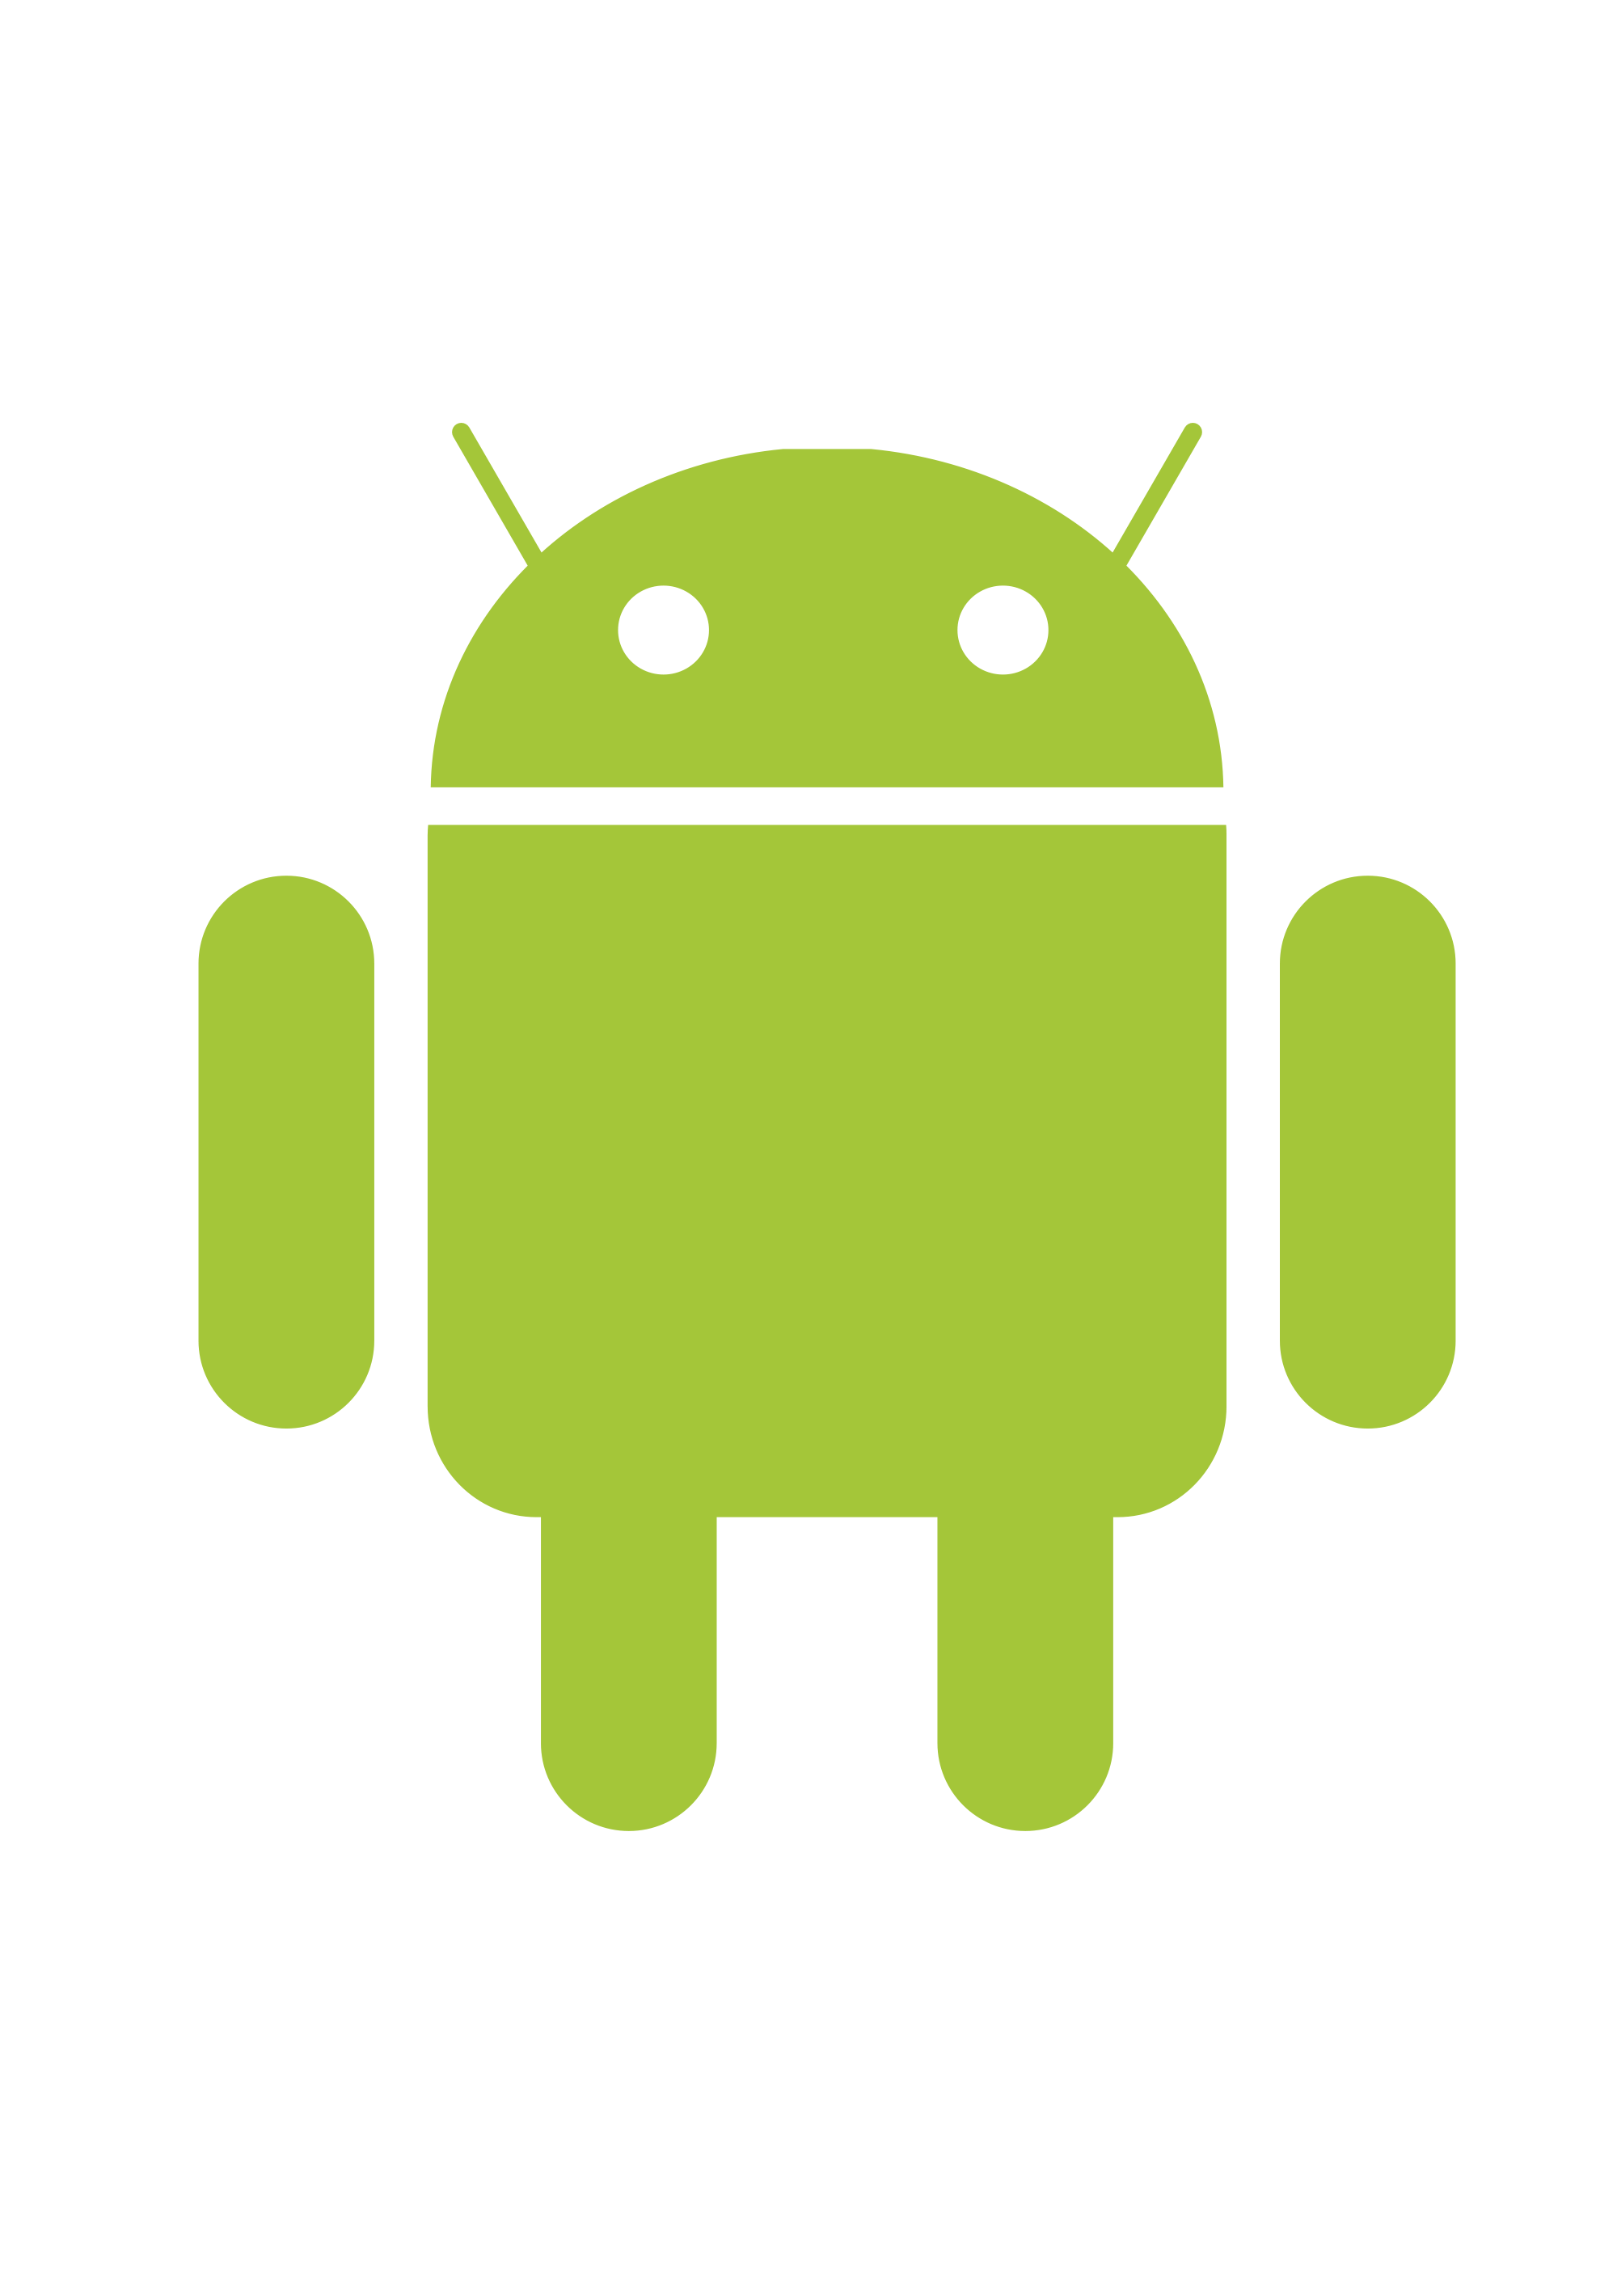 Svg samples png. File android sample wikimedia